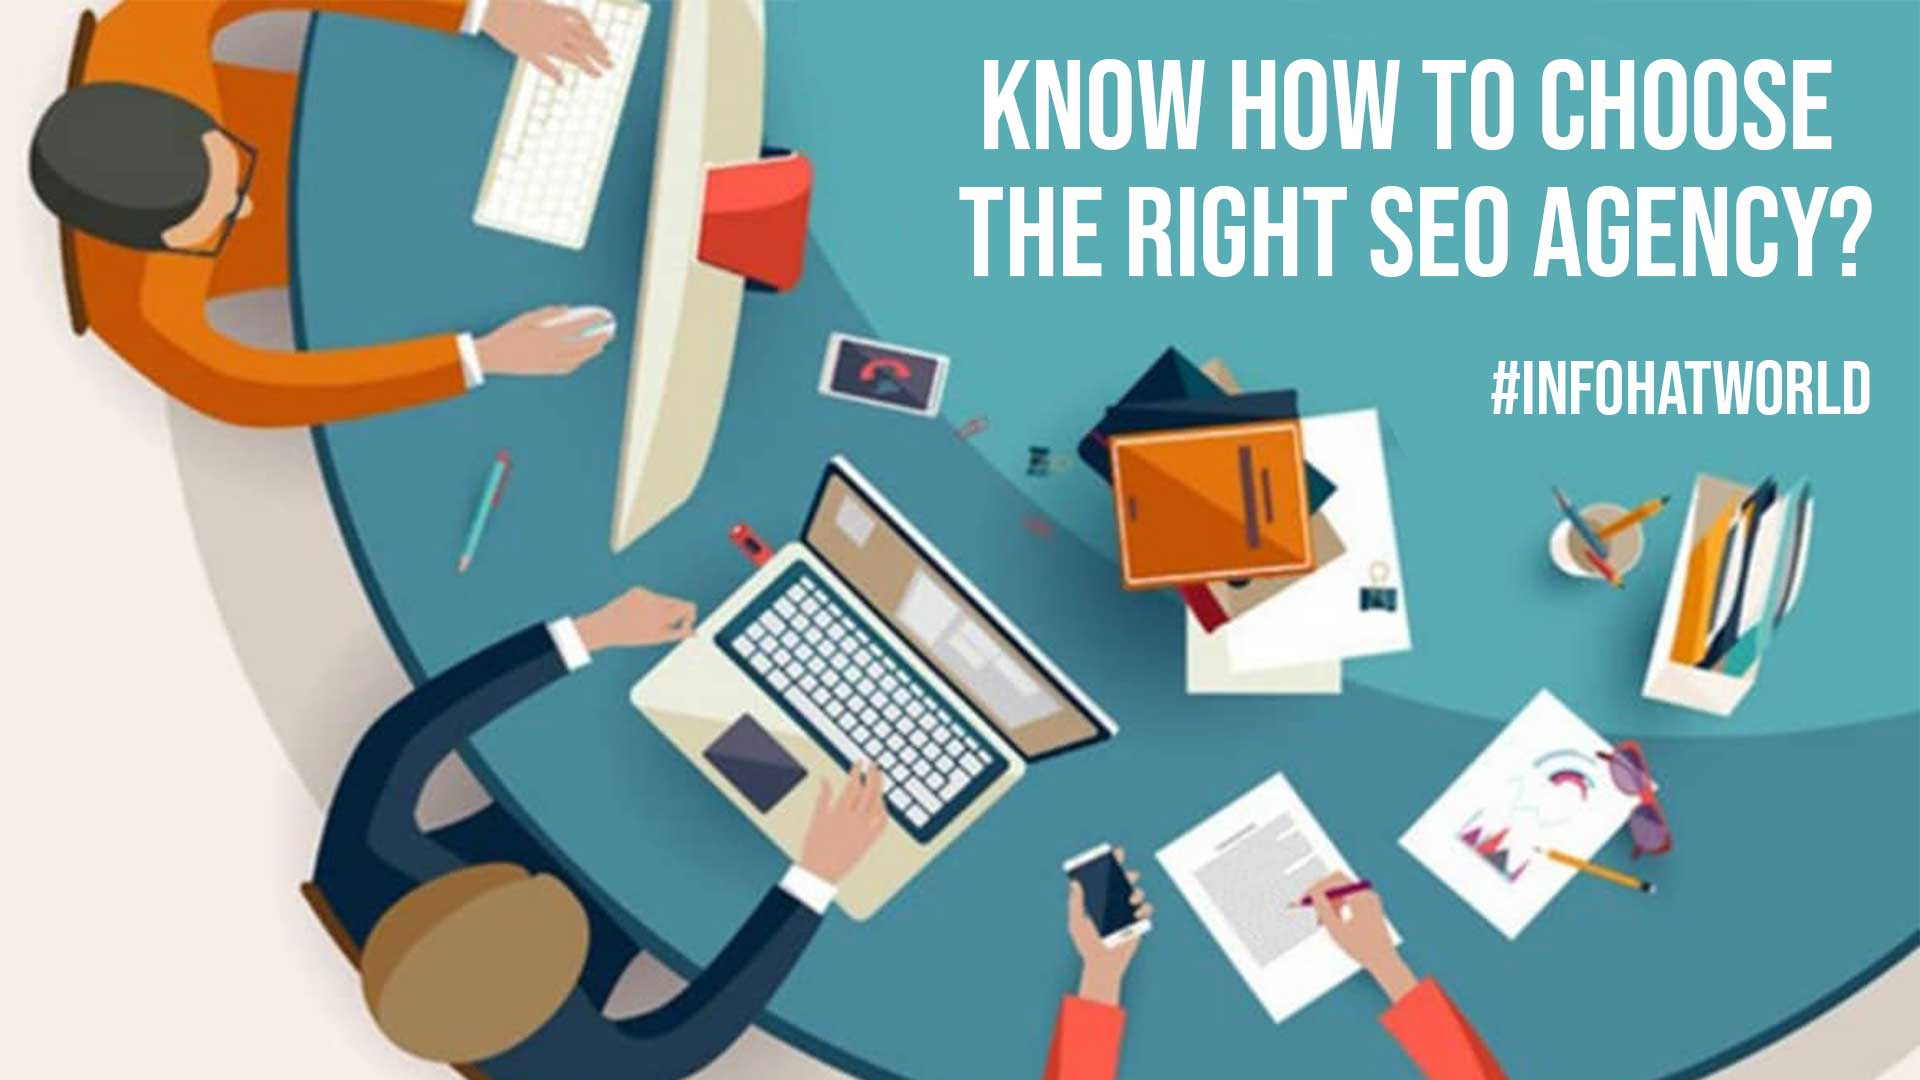 Know How to Choose the Right SEO Agency